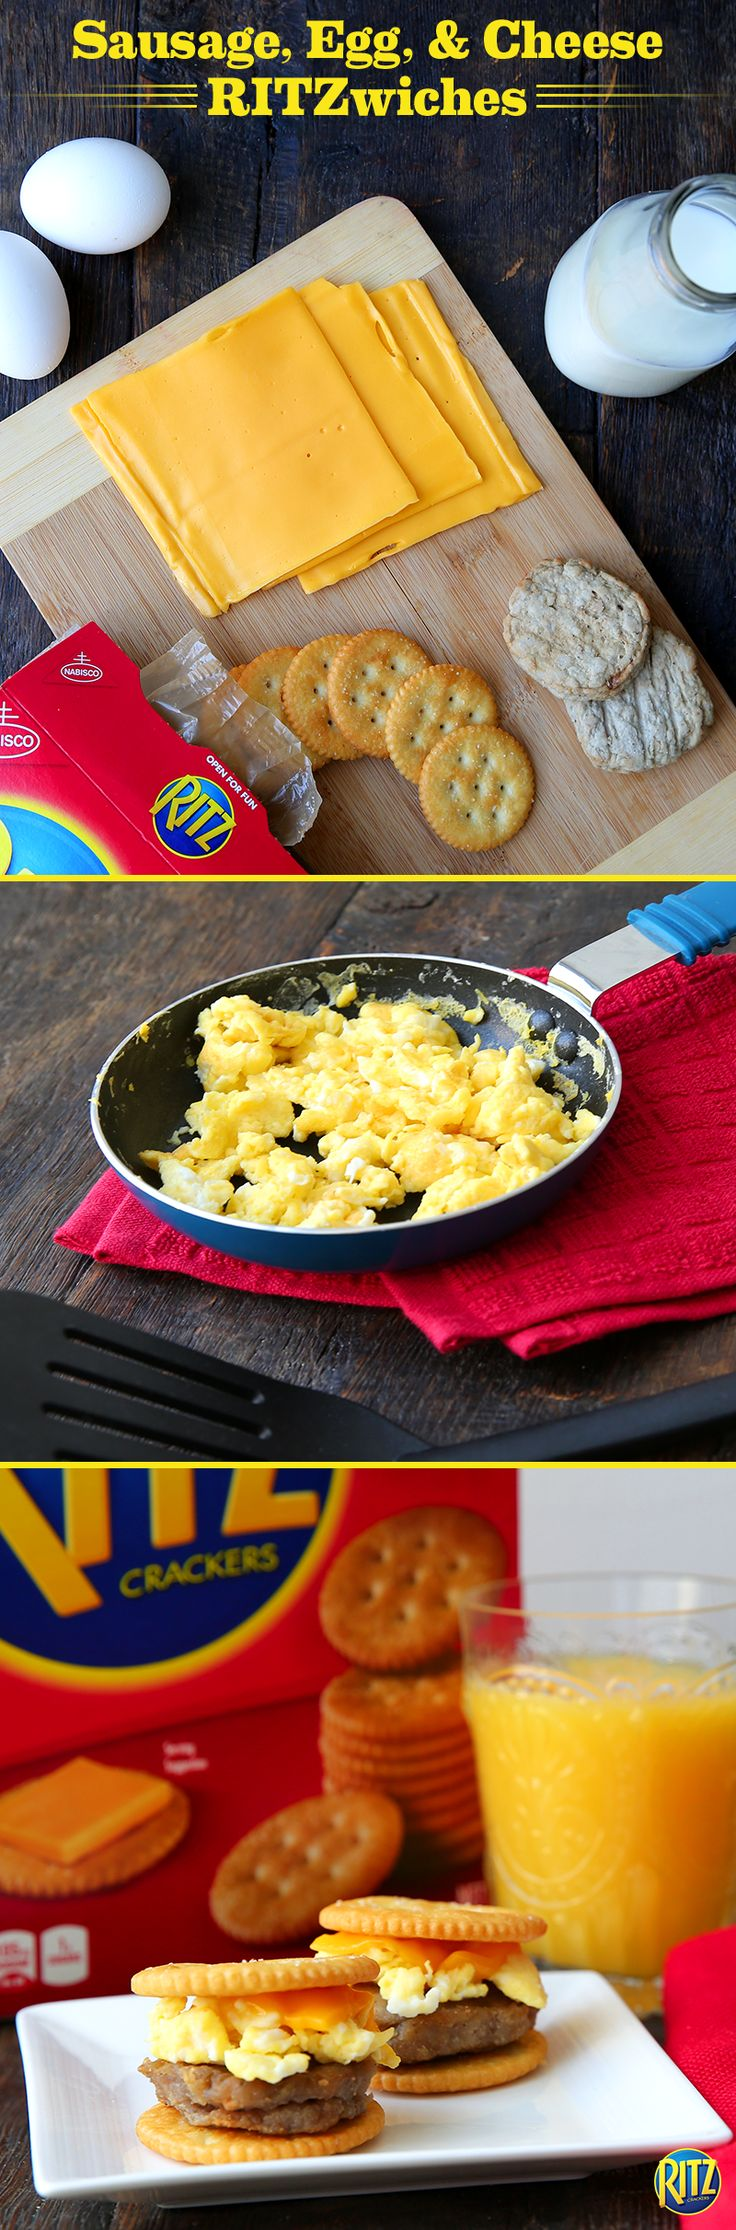 These Sausage, Egg, and Cheese bites are a mini version of everyone's favorite breakfast sandwich. Whisk eggs and milk , cooking in a skillet until set. Shape breakfast pork sausage into one-inch patties and cook until done. Top each cracker with a piece of sausage, egg, and American cheese, baking until cheese melts. Substitute sausage for bacon if that's what you're into!